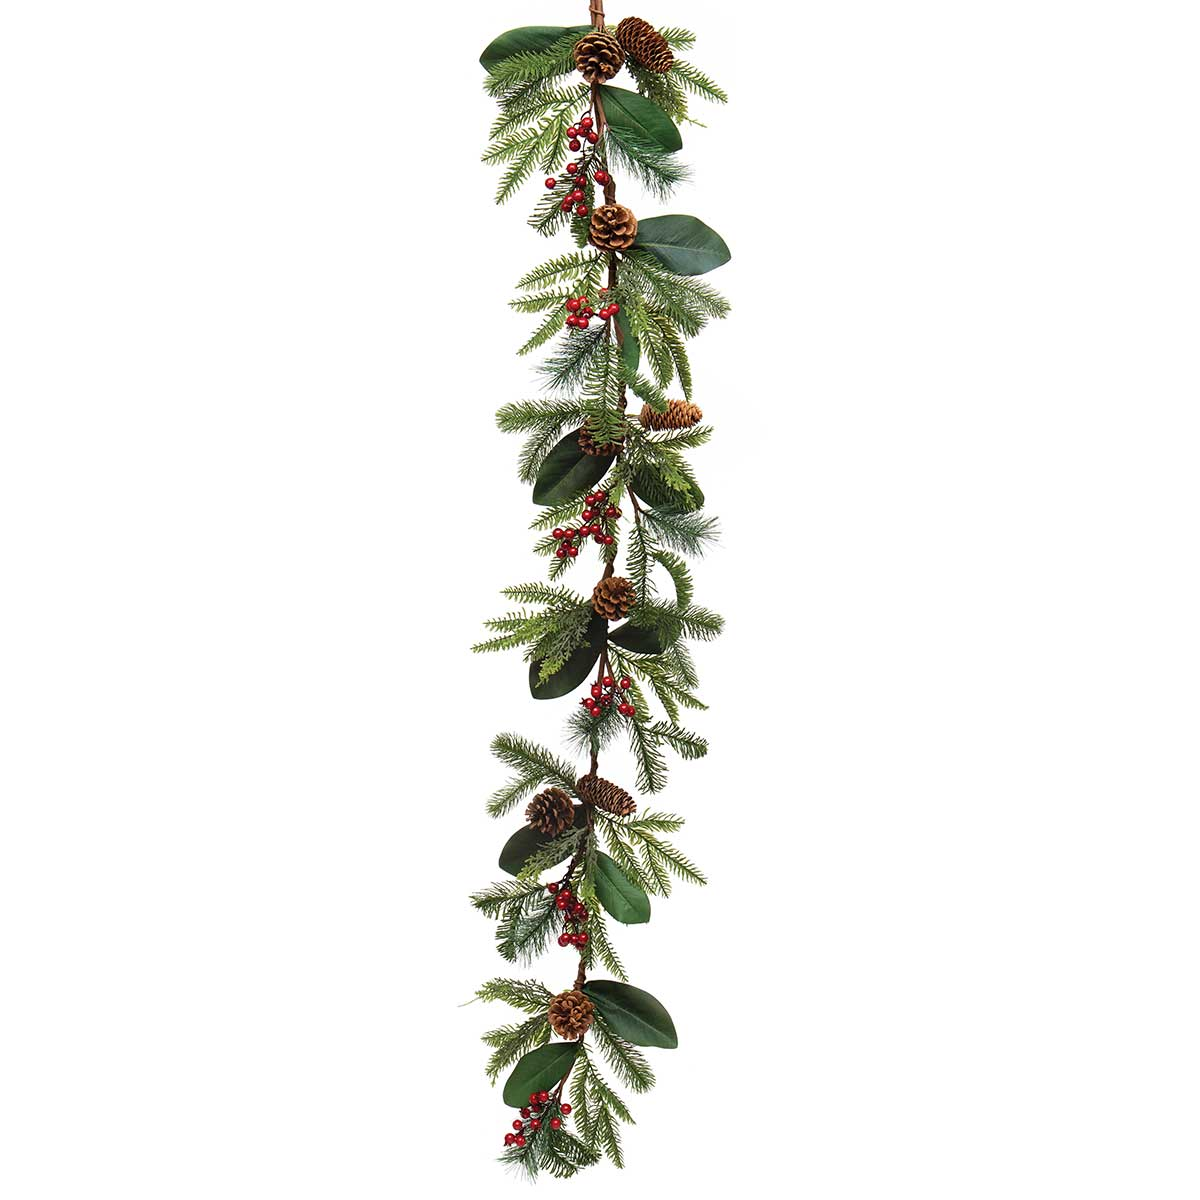 SOUTHERN HOLIDAY PINE GARLAND WITH MAGNOLIA LEAVES, RED